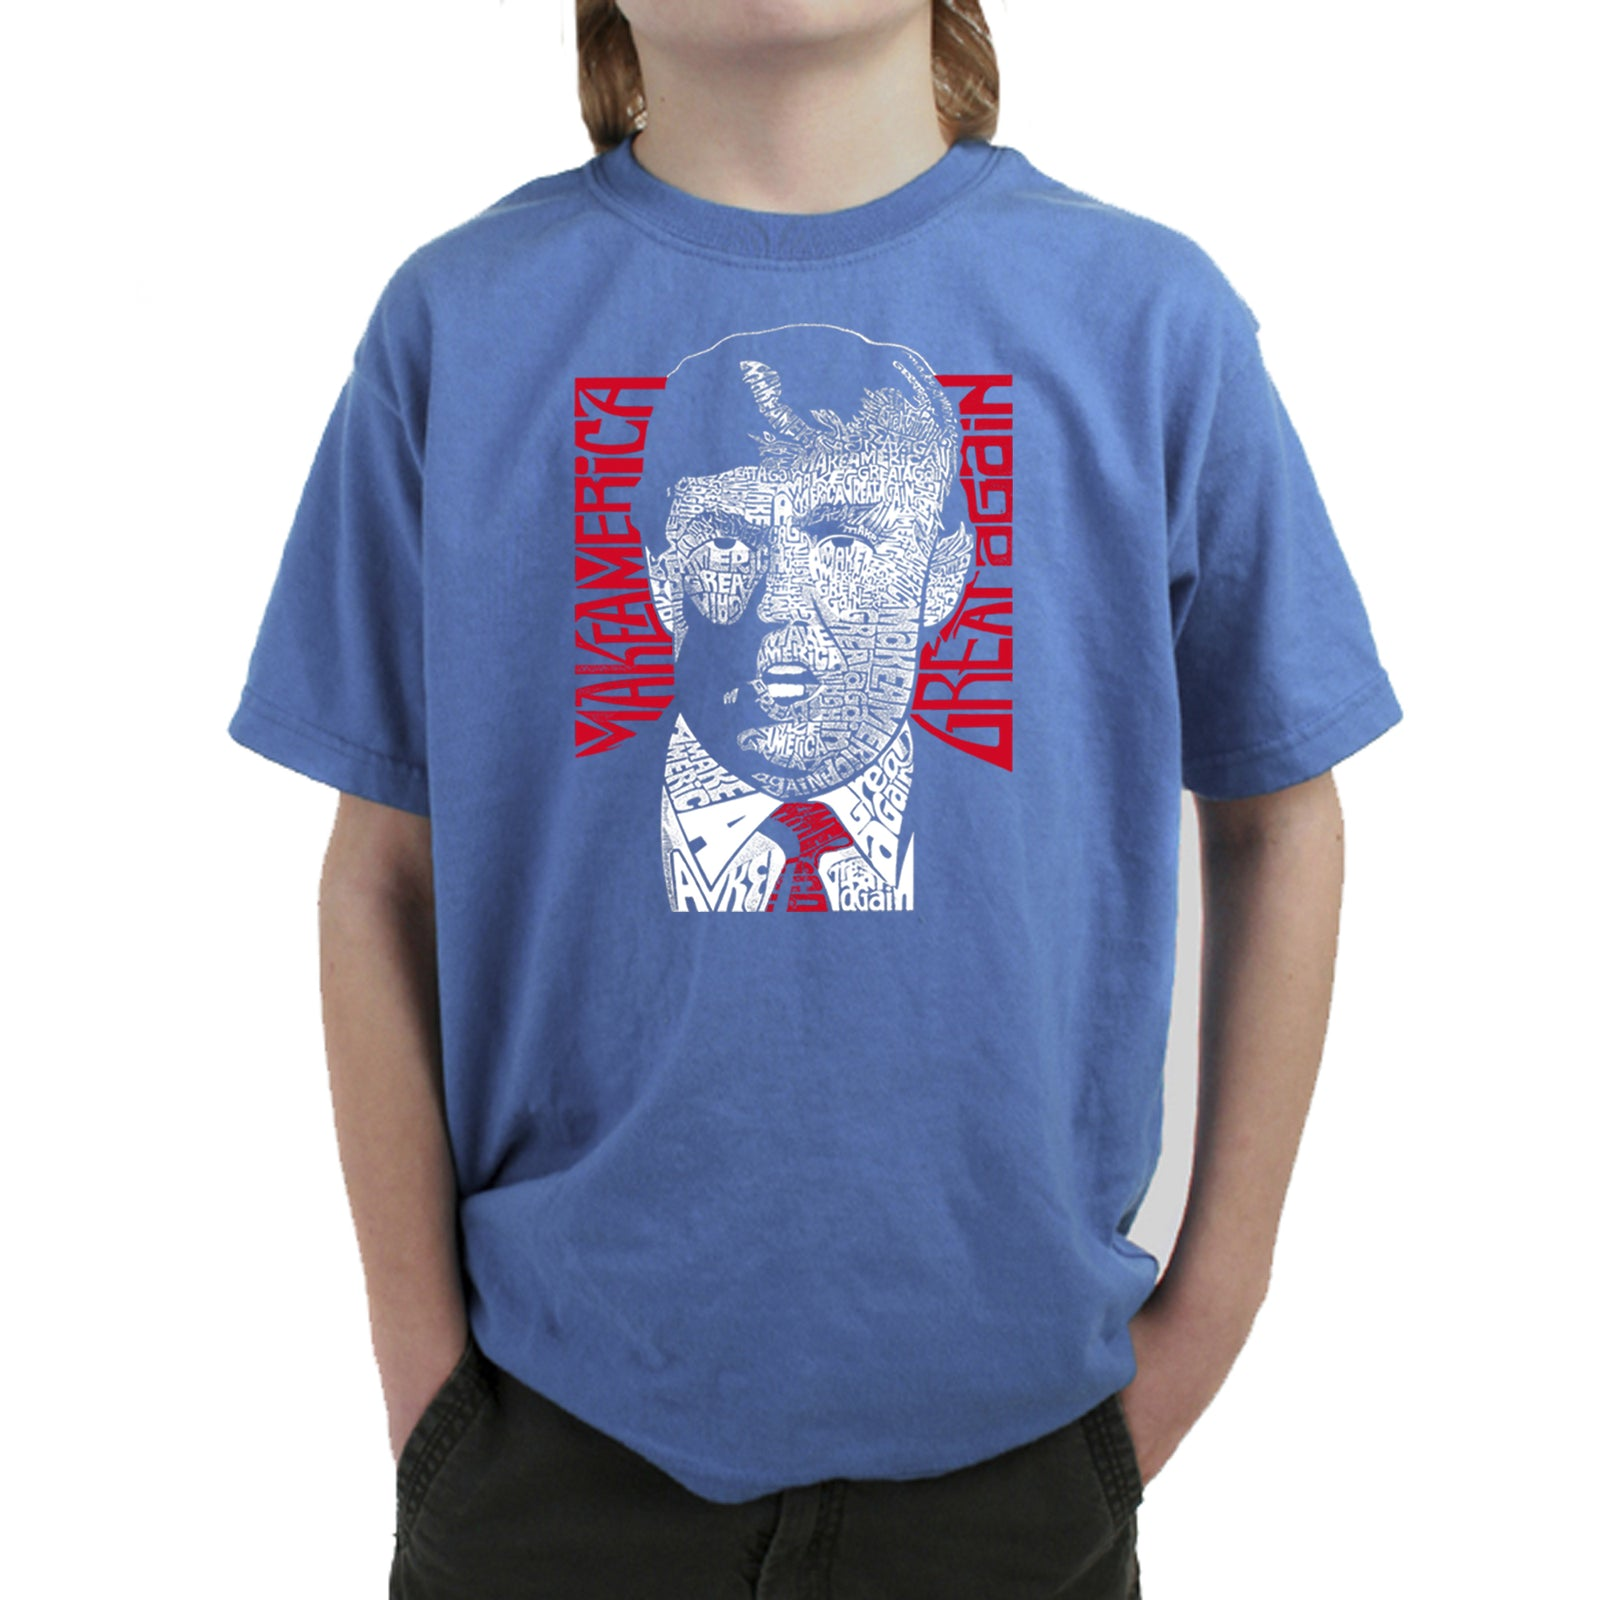 Boy's T-shirt - TRUMP  - Make America Great Again